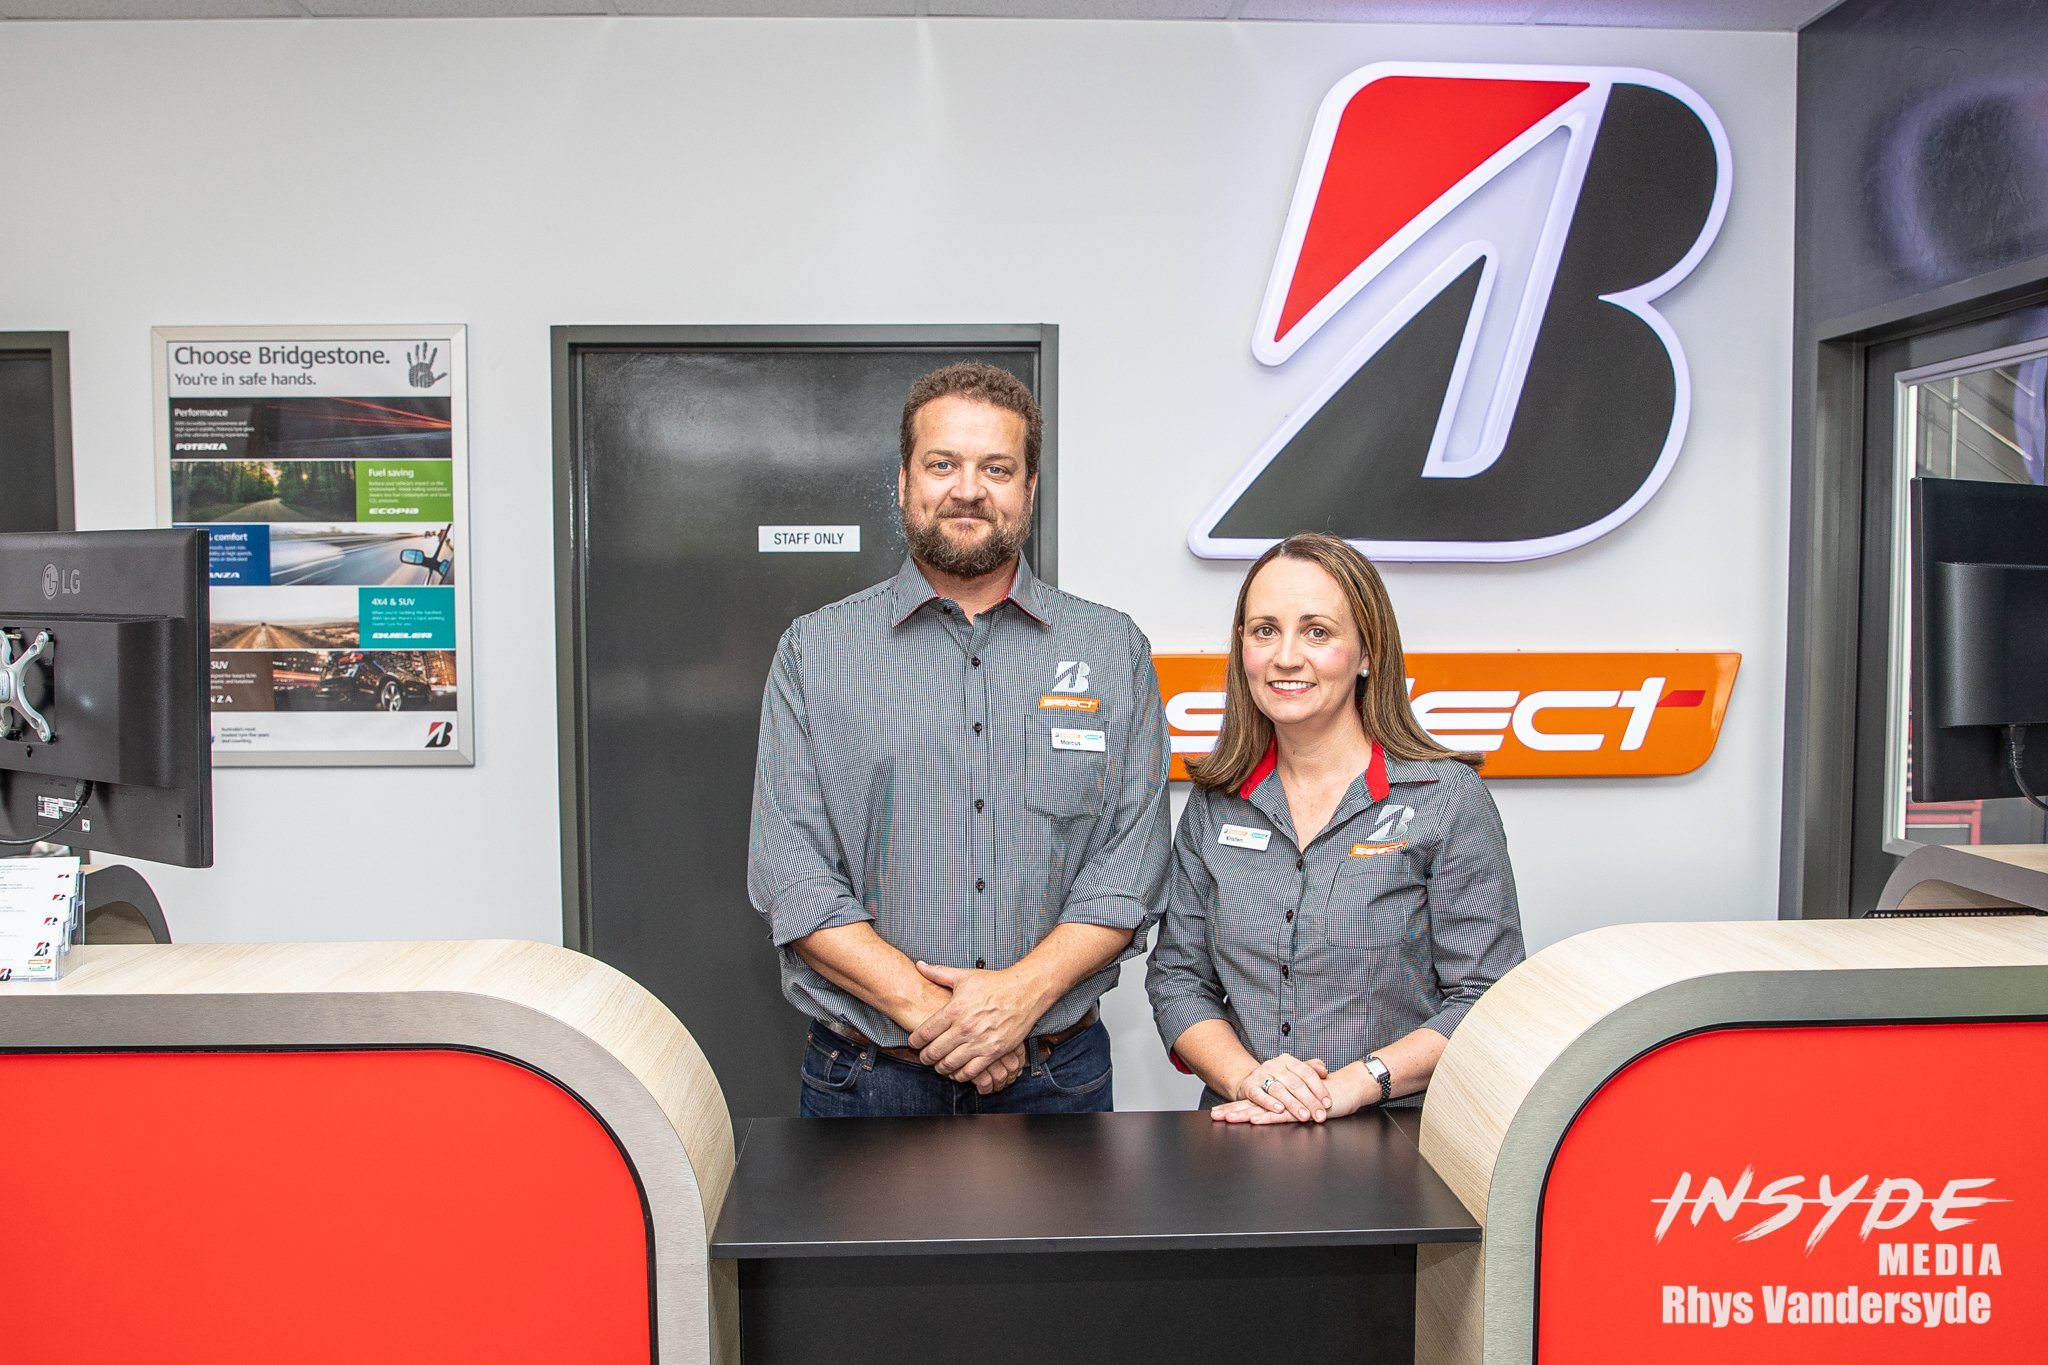 Bridgestone - B-Select Stores